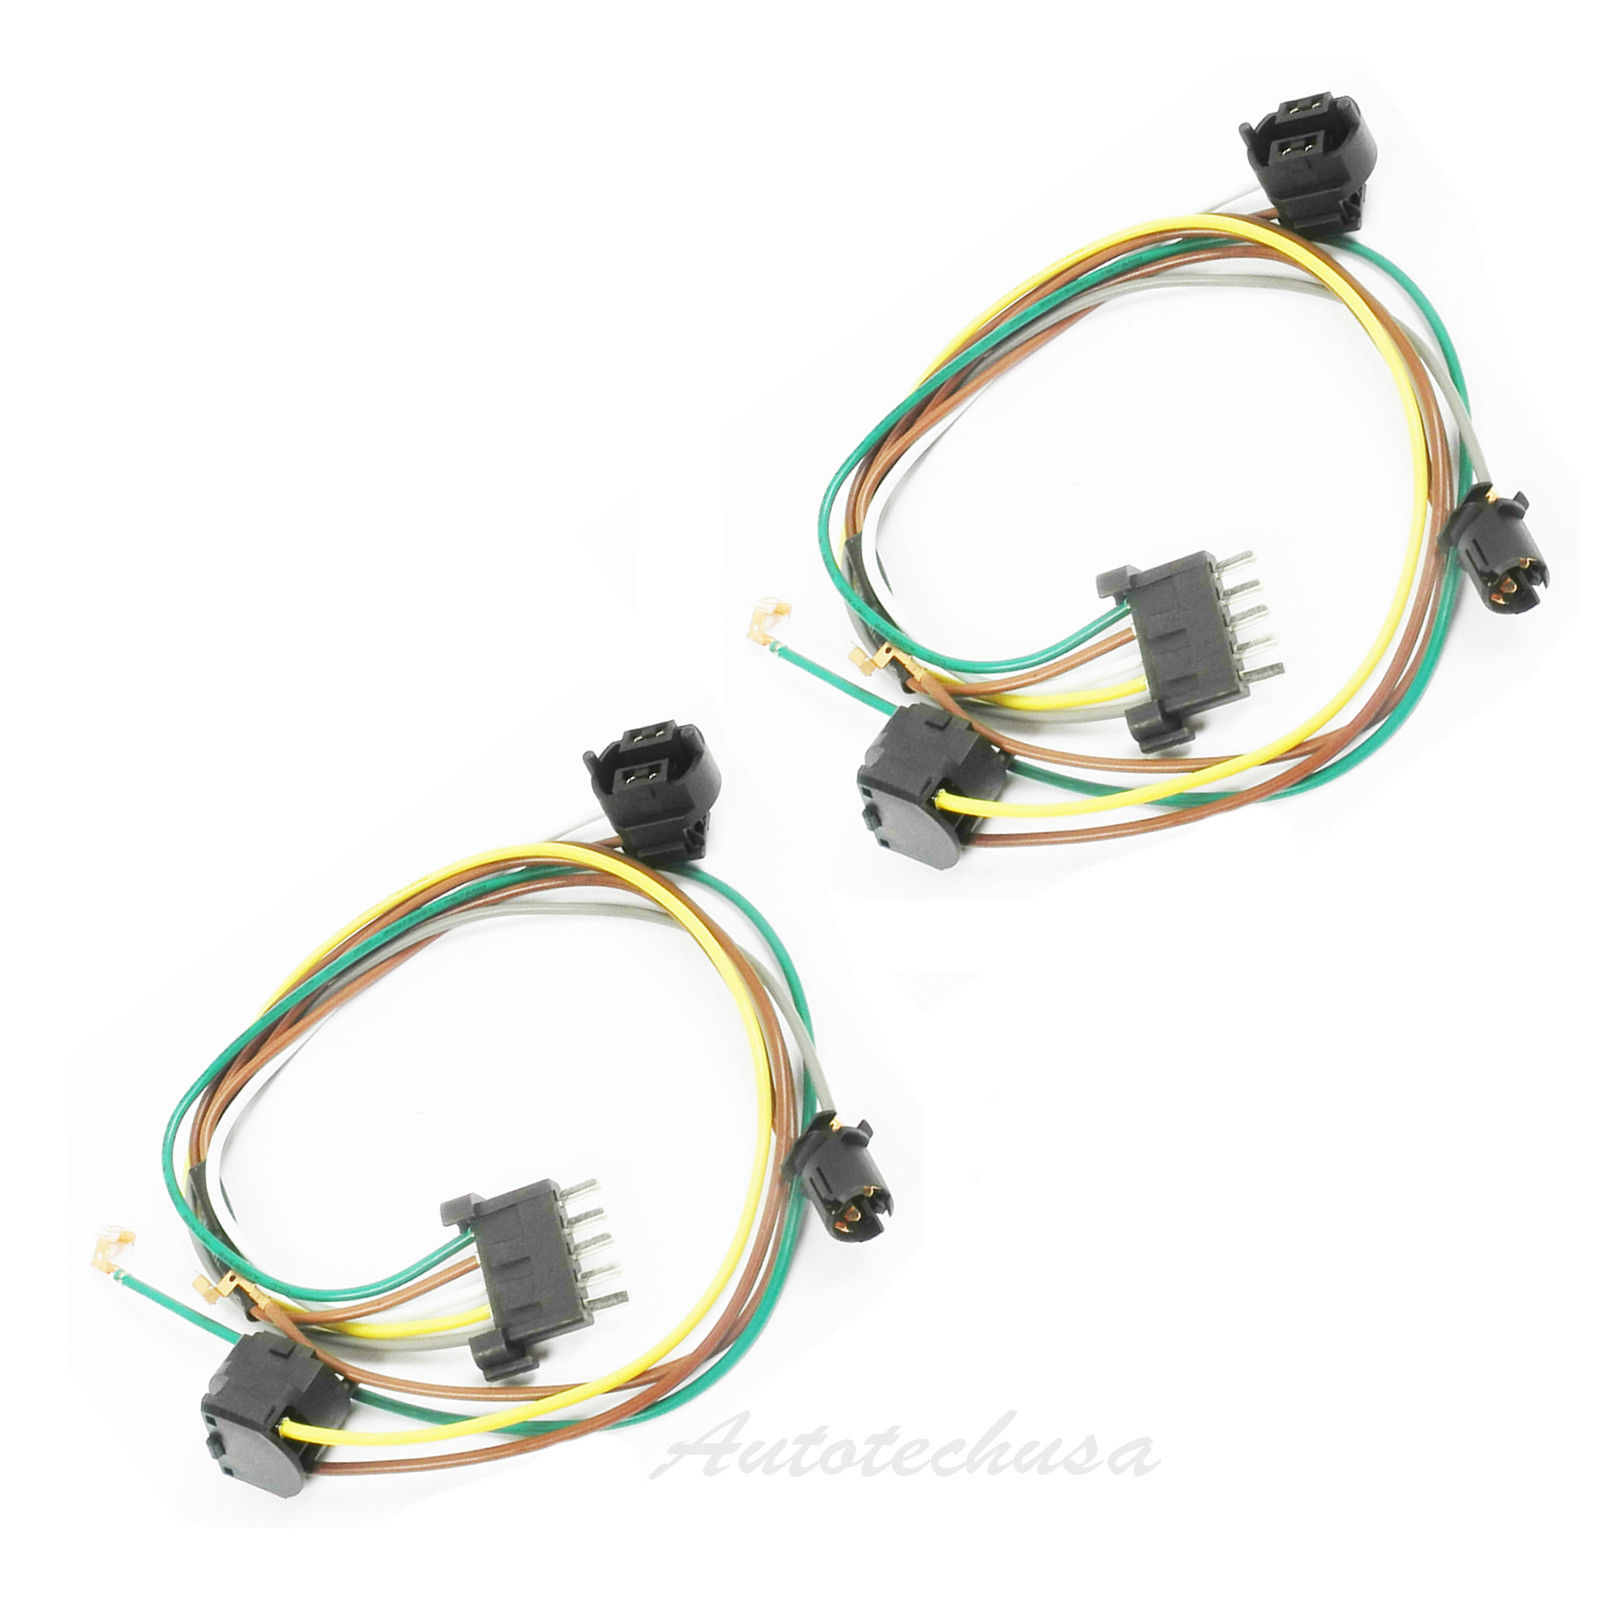 Details about For L +R Headlight Halogen Wiring Harness Connector Kit on headlight connectors, headlight bracket, heavy duty headlight harness, headlight relay harness, bucket truck harness,